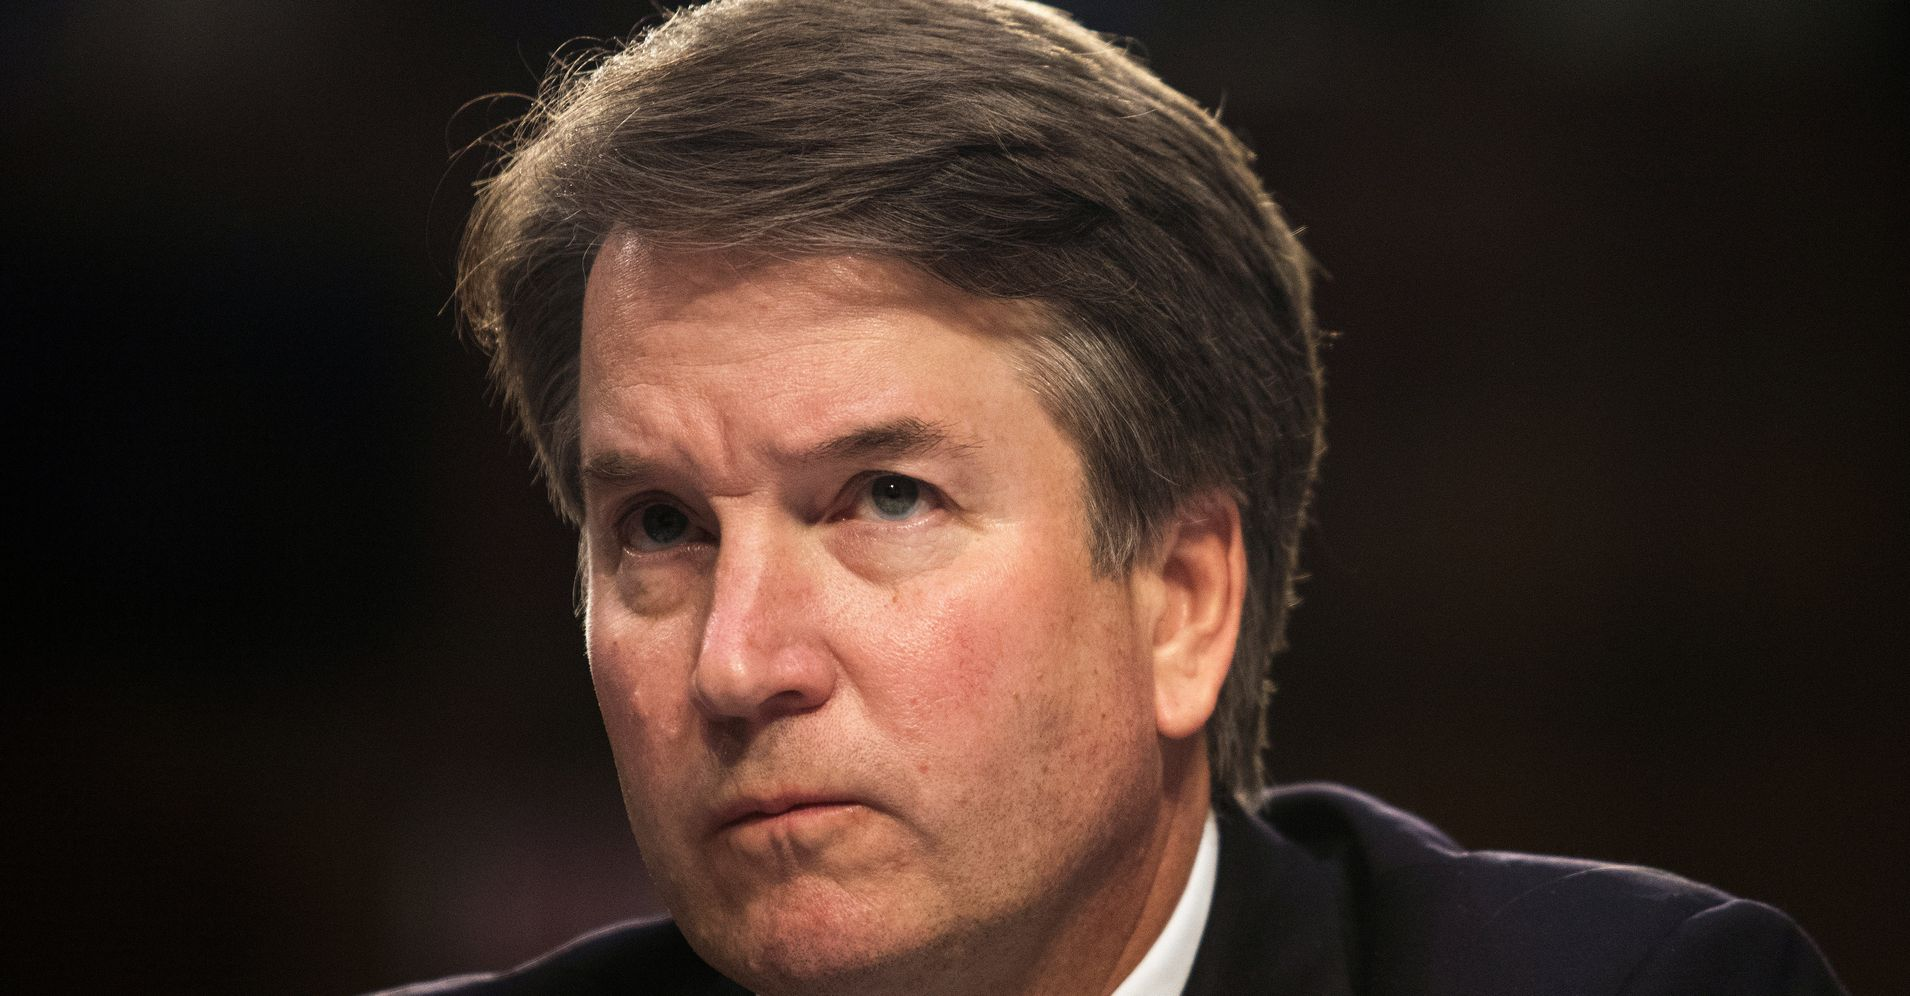 Brett Kavanaugh Questioned By Senate About Fourth Sexual Misconduct Allegation